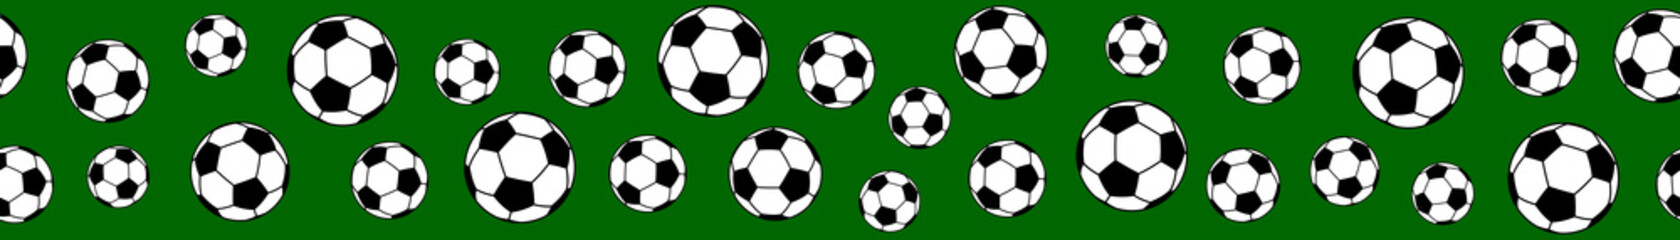 Seamless horizontal banner of soccer balls on green background.